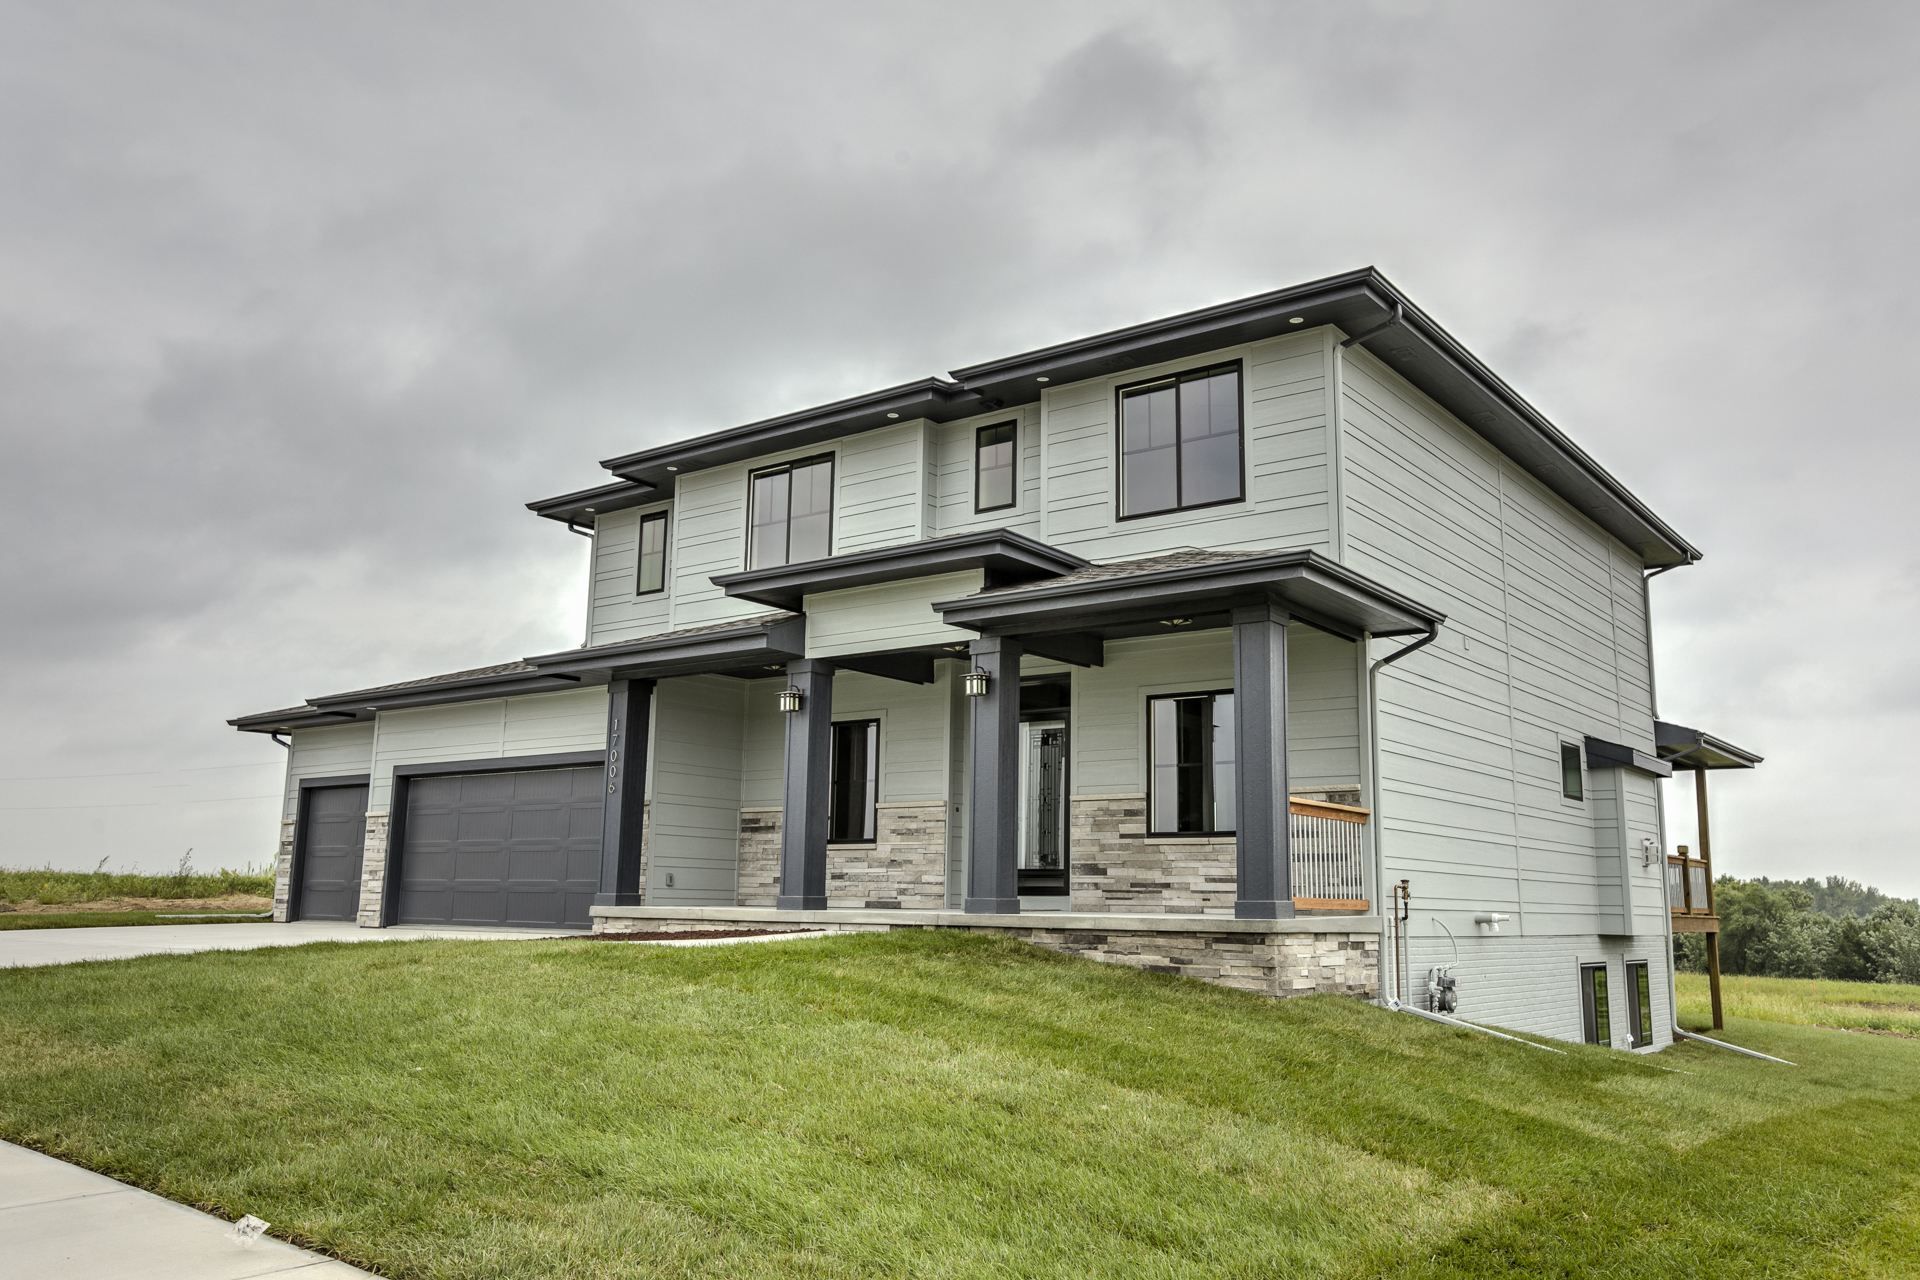 Sold home    17006 Potter st   Sold Anchor point, our two story home  with Stone Fireplace and Bamboo floors  Spaces Decks and Stylish Lighting